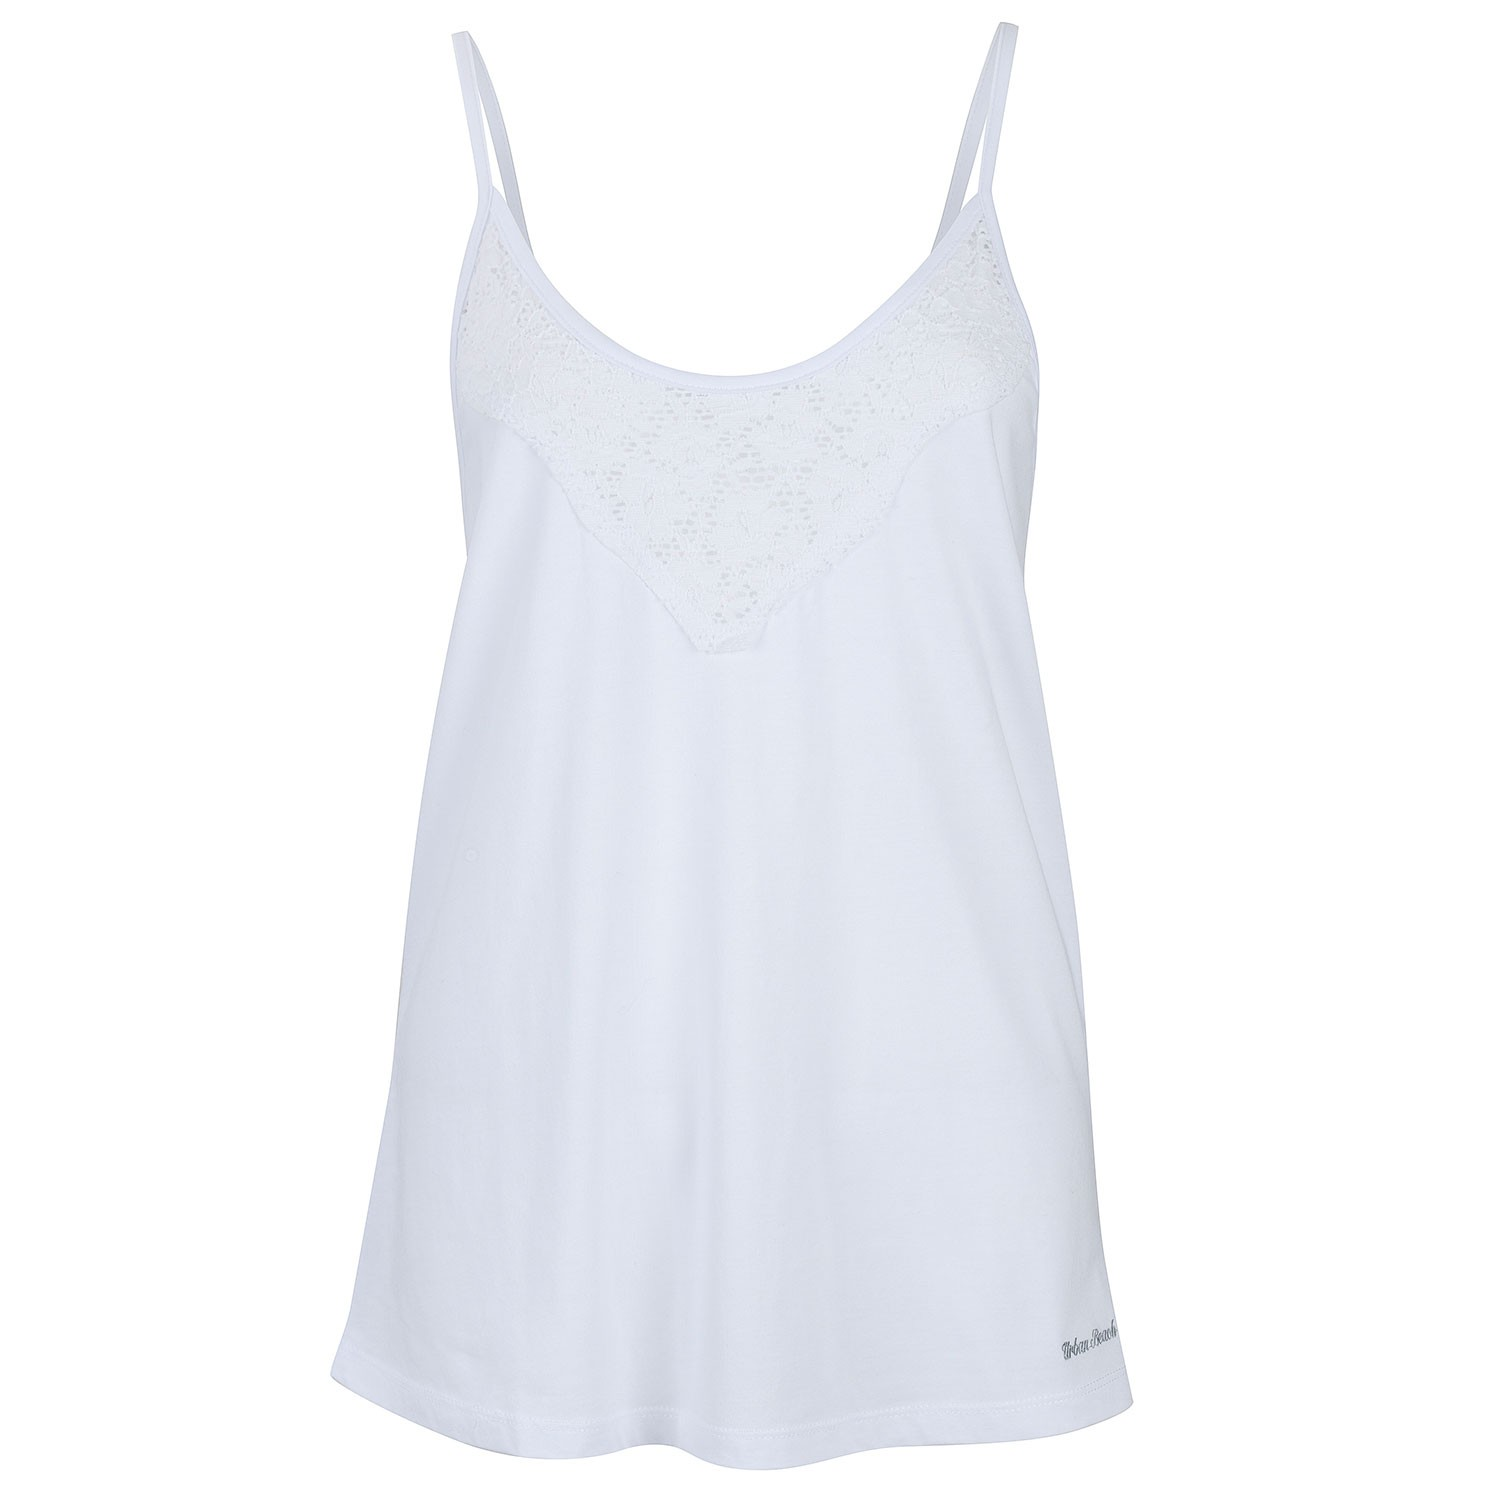 dbf325faf0 Womens White Vest Top All Laced Up- Free Delivery Over £20 - Urban Beach